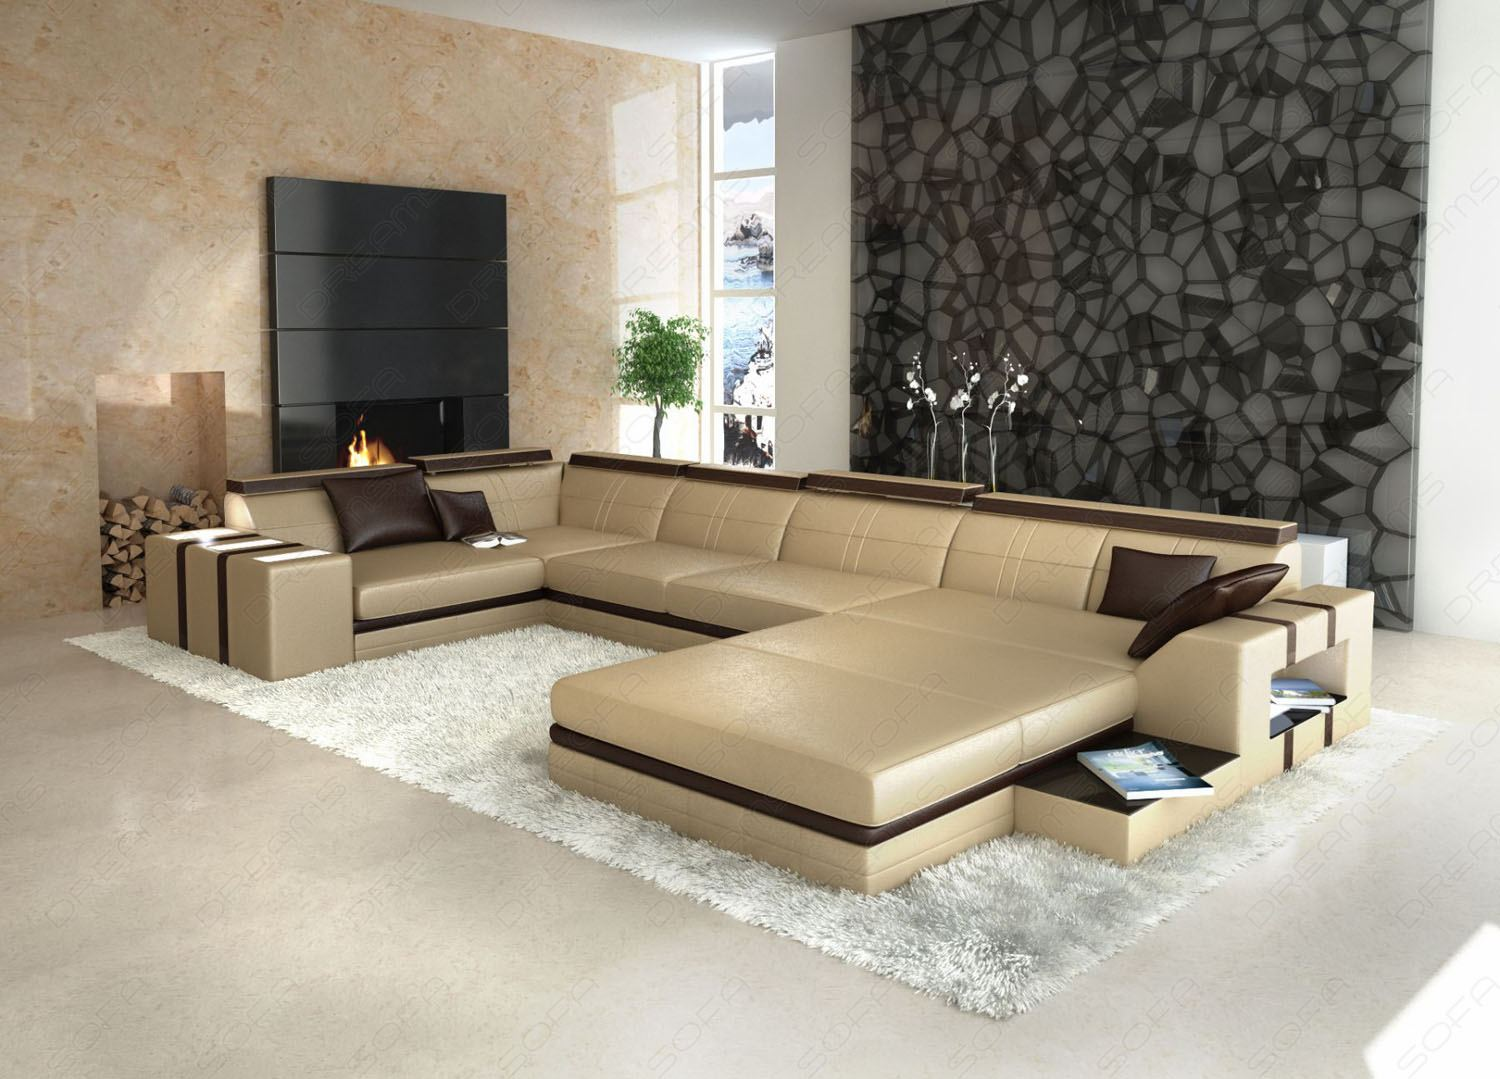 leather sofa asti u shaped couch beige brown interior. Black Bedroom Furniture Sets. Home Design Ideas